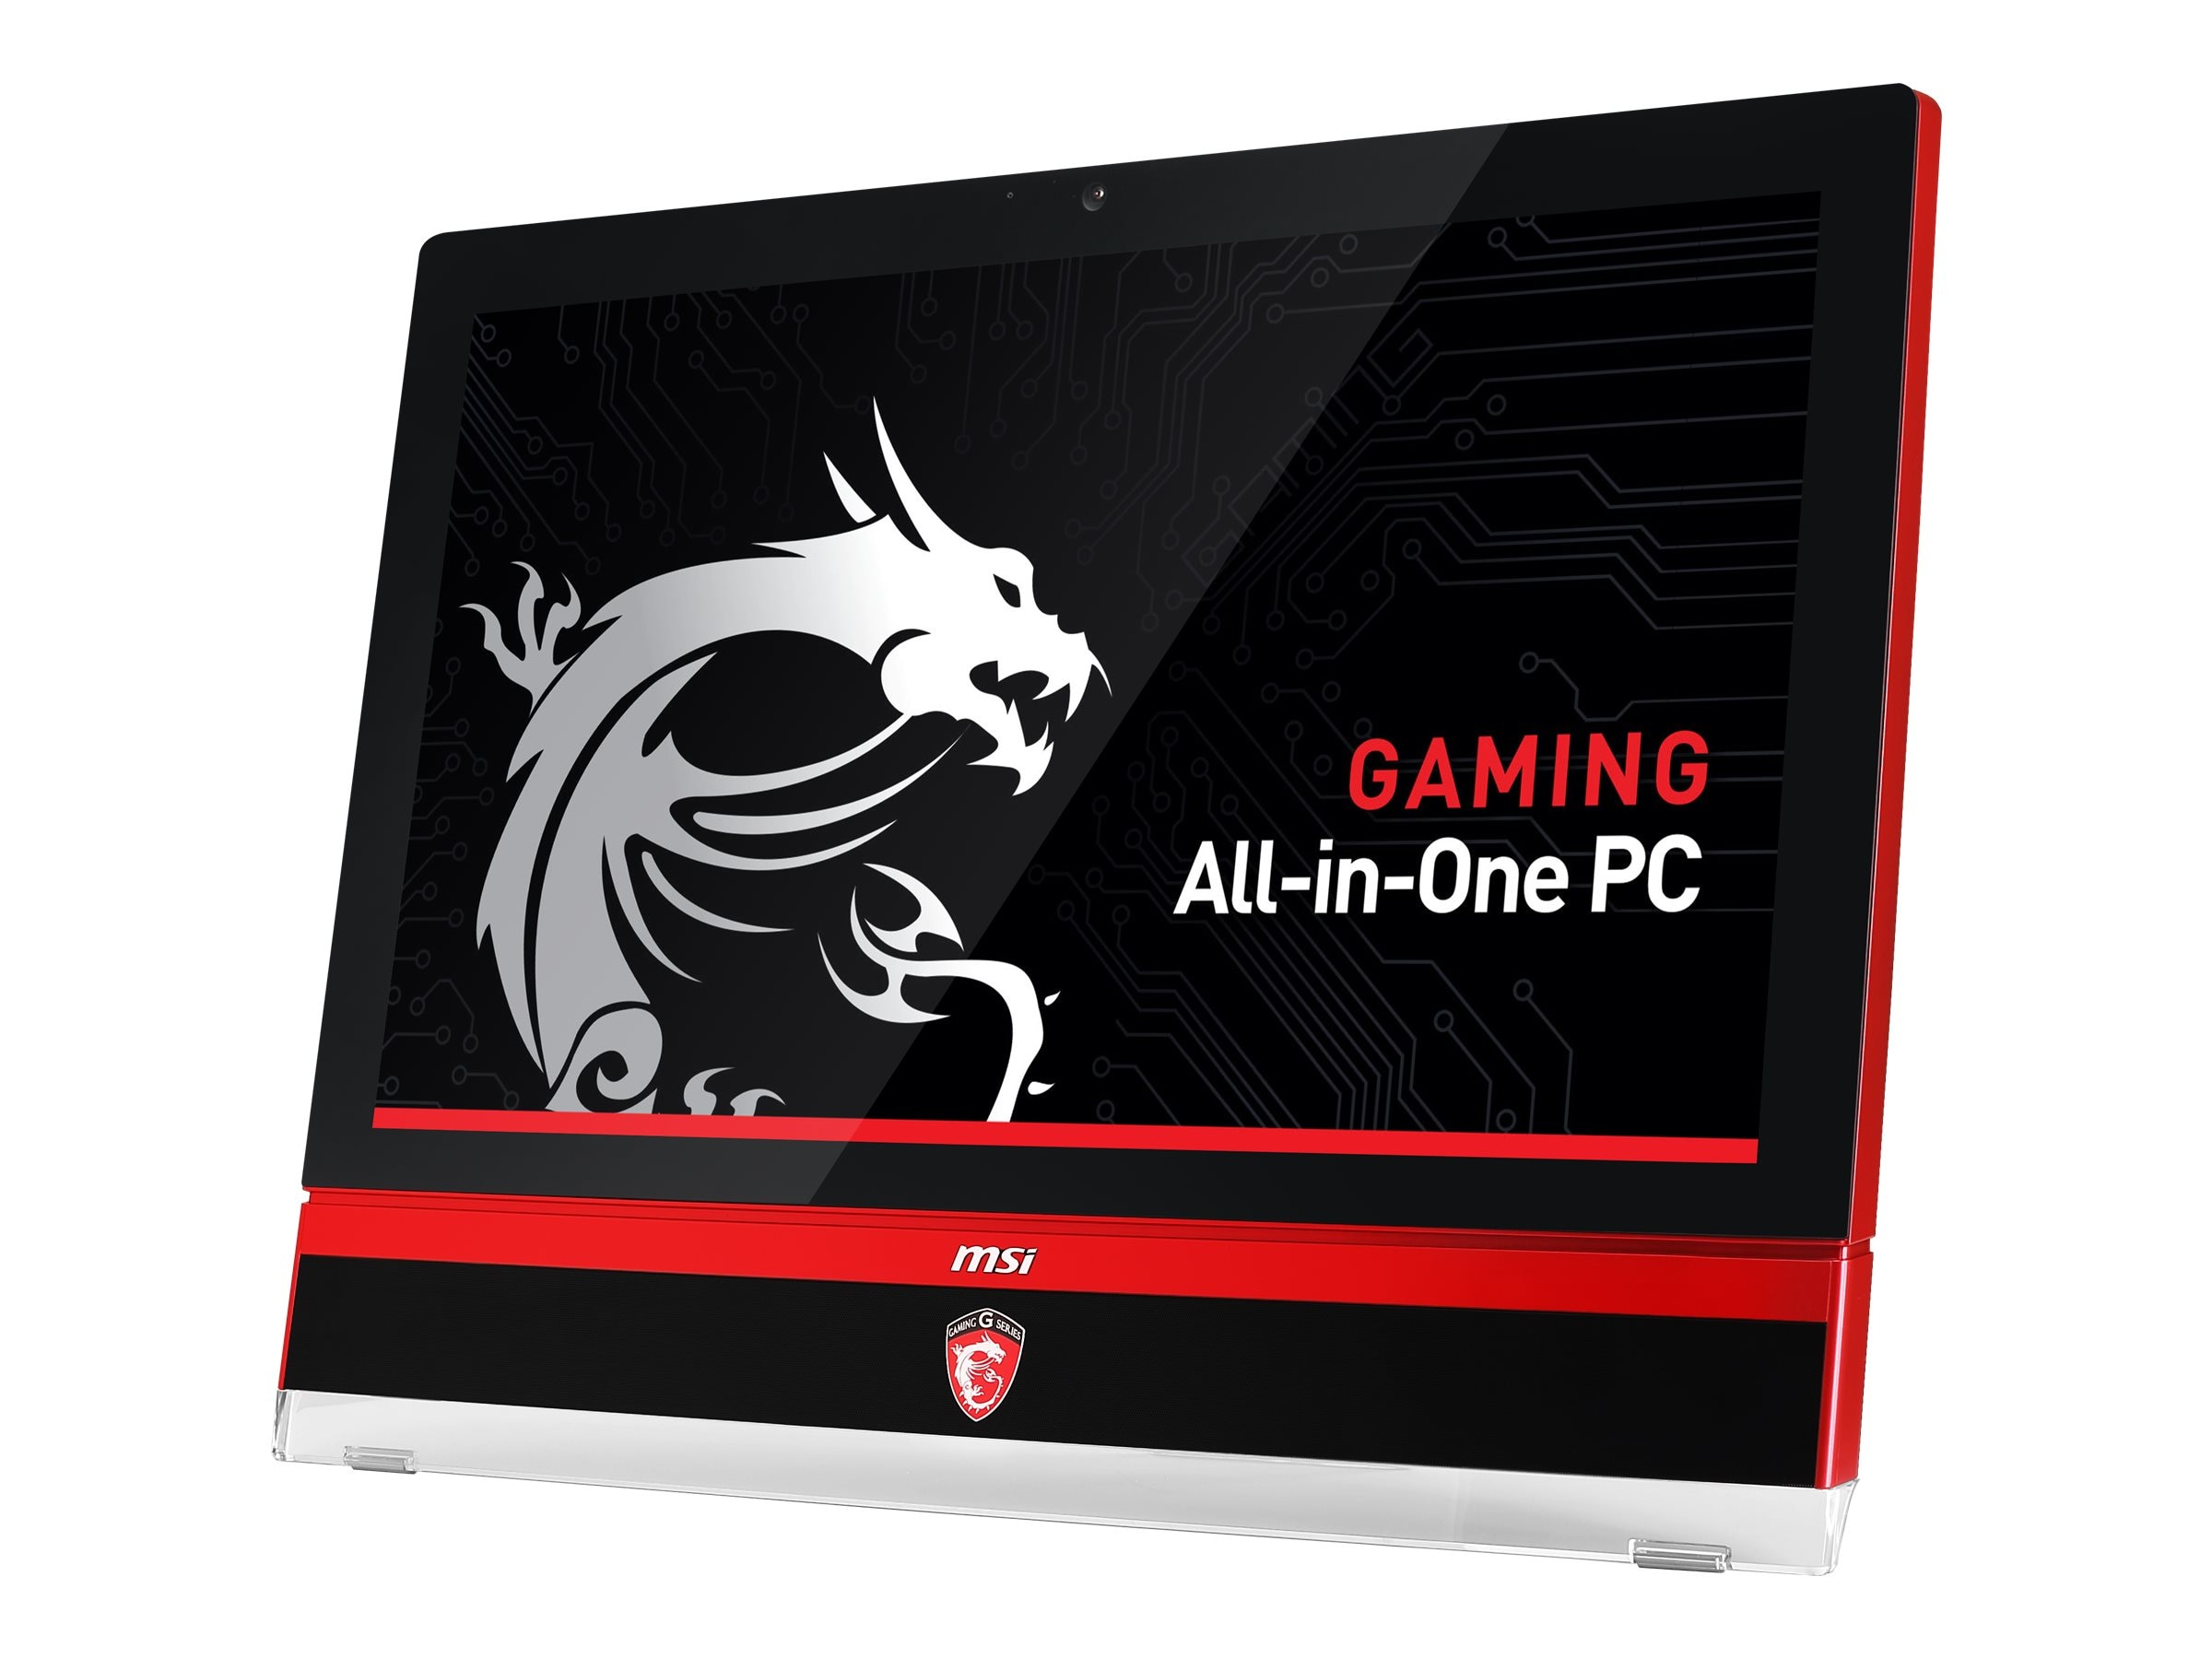 MSI AG270 2QE-043US AIO Core i7-4710 GTX980M 27 W8.1 , Black Red, AG270 2QE-043US, 17933608, Desktops - All-in-One